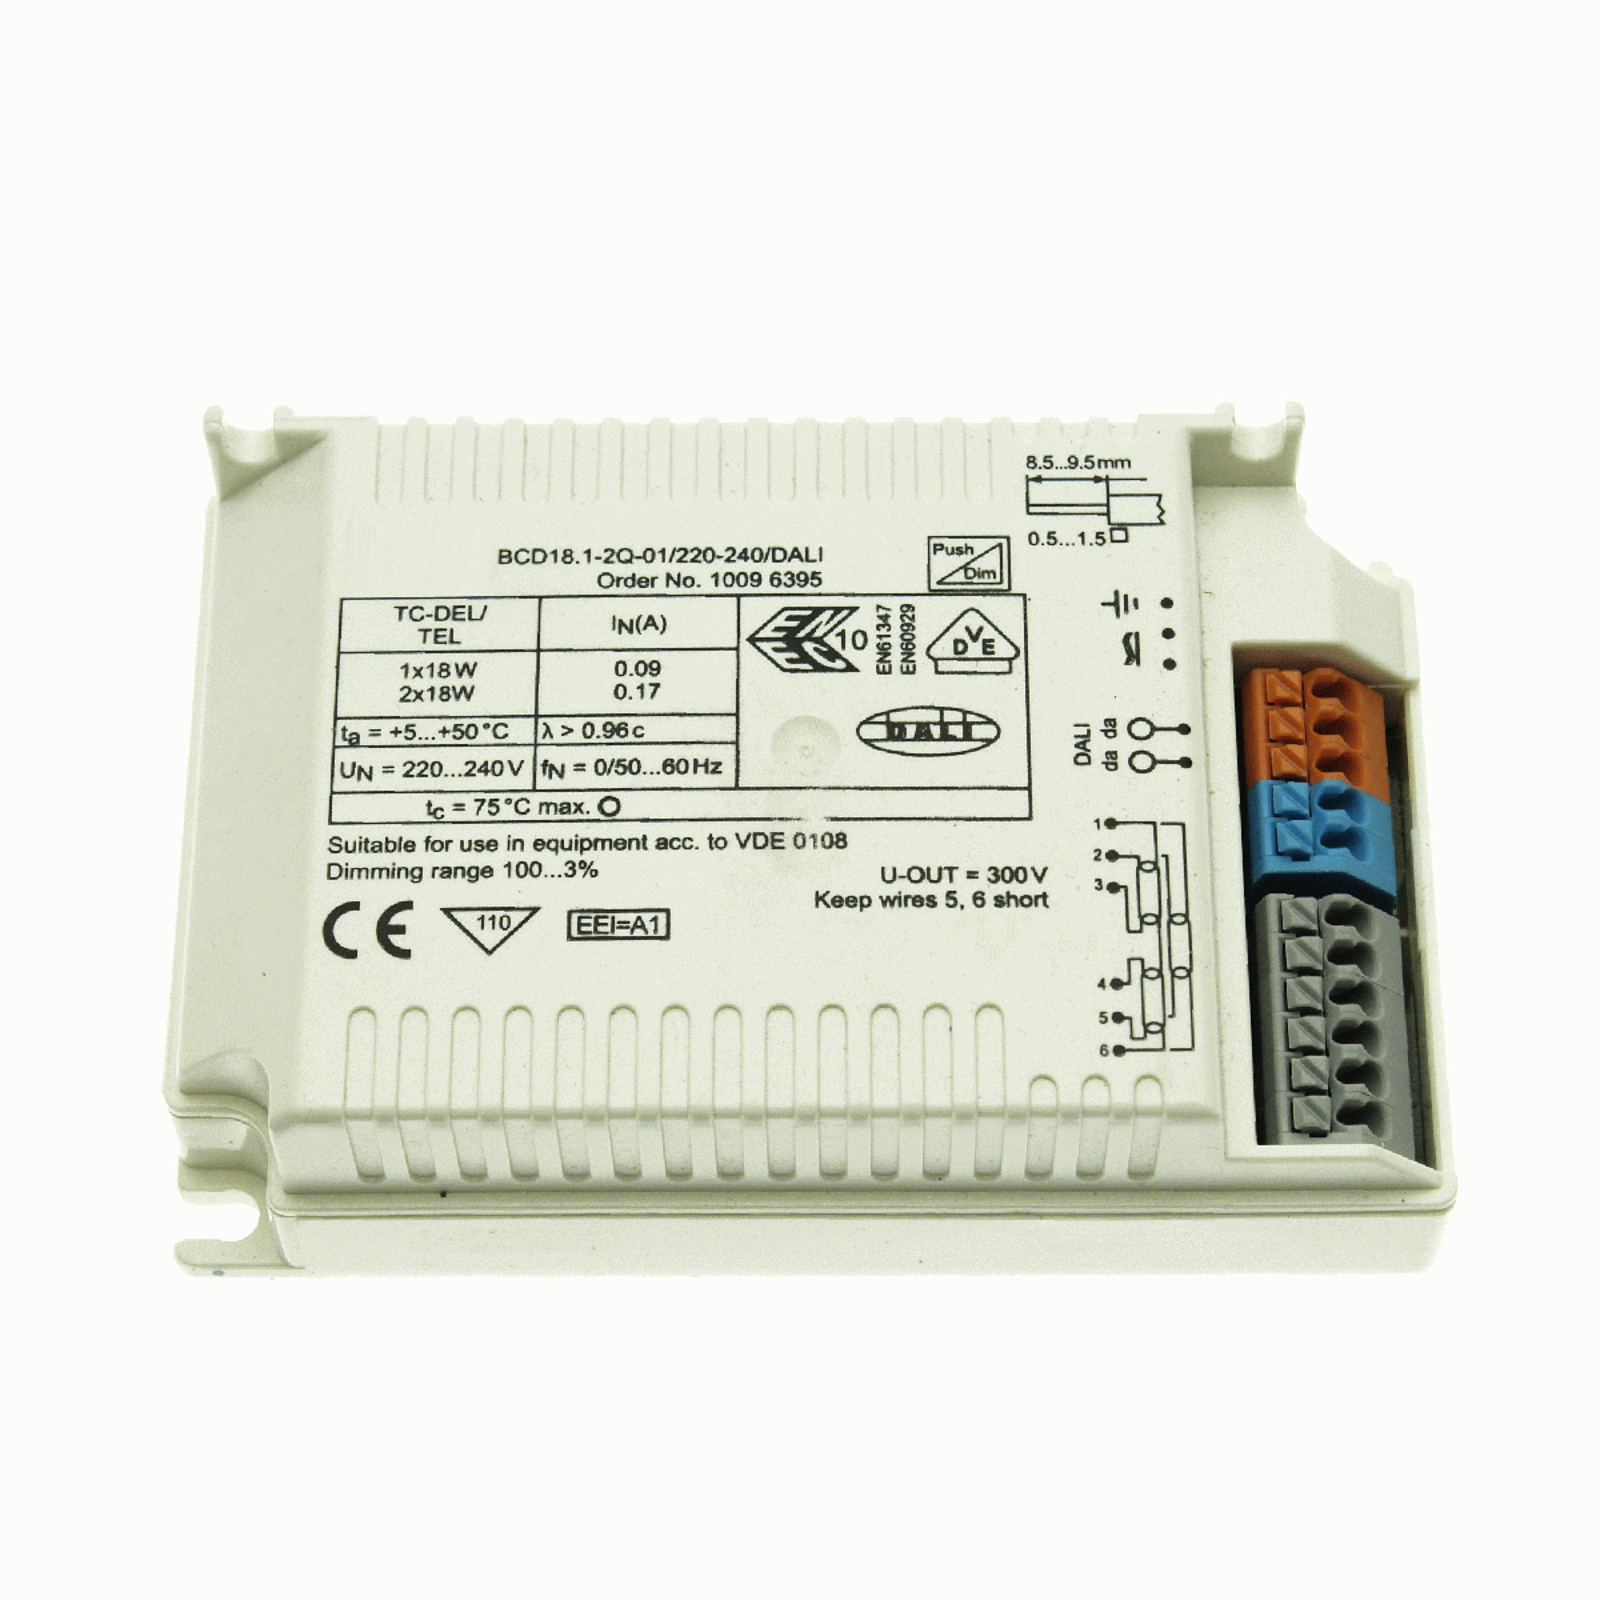 BE 18 W BCD18.1-2Q-01/220-240/dimmable DALI